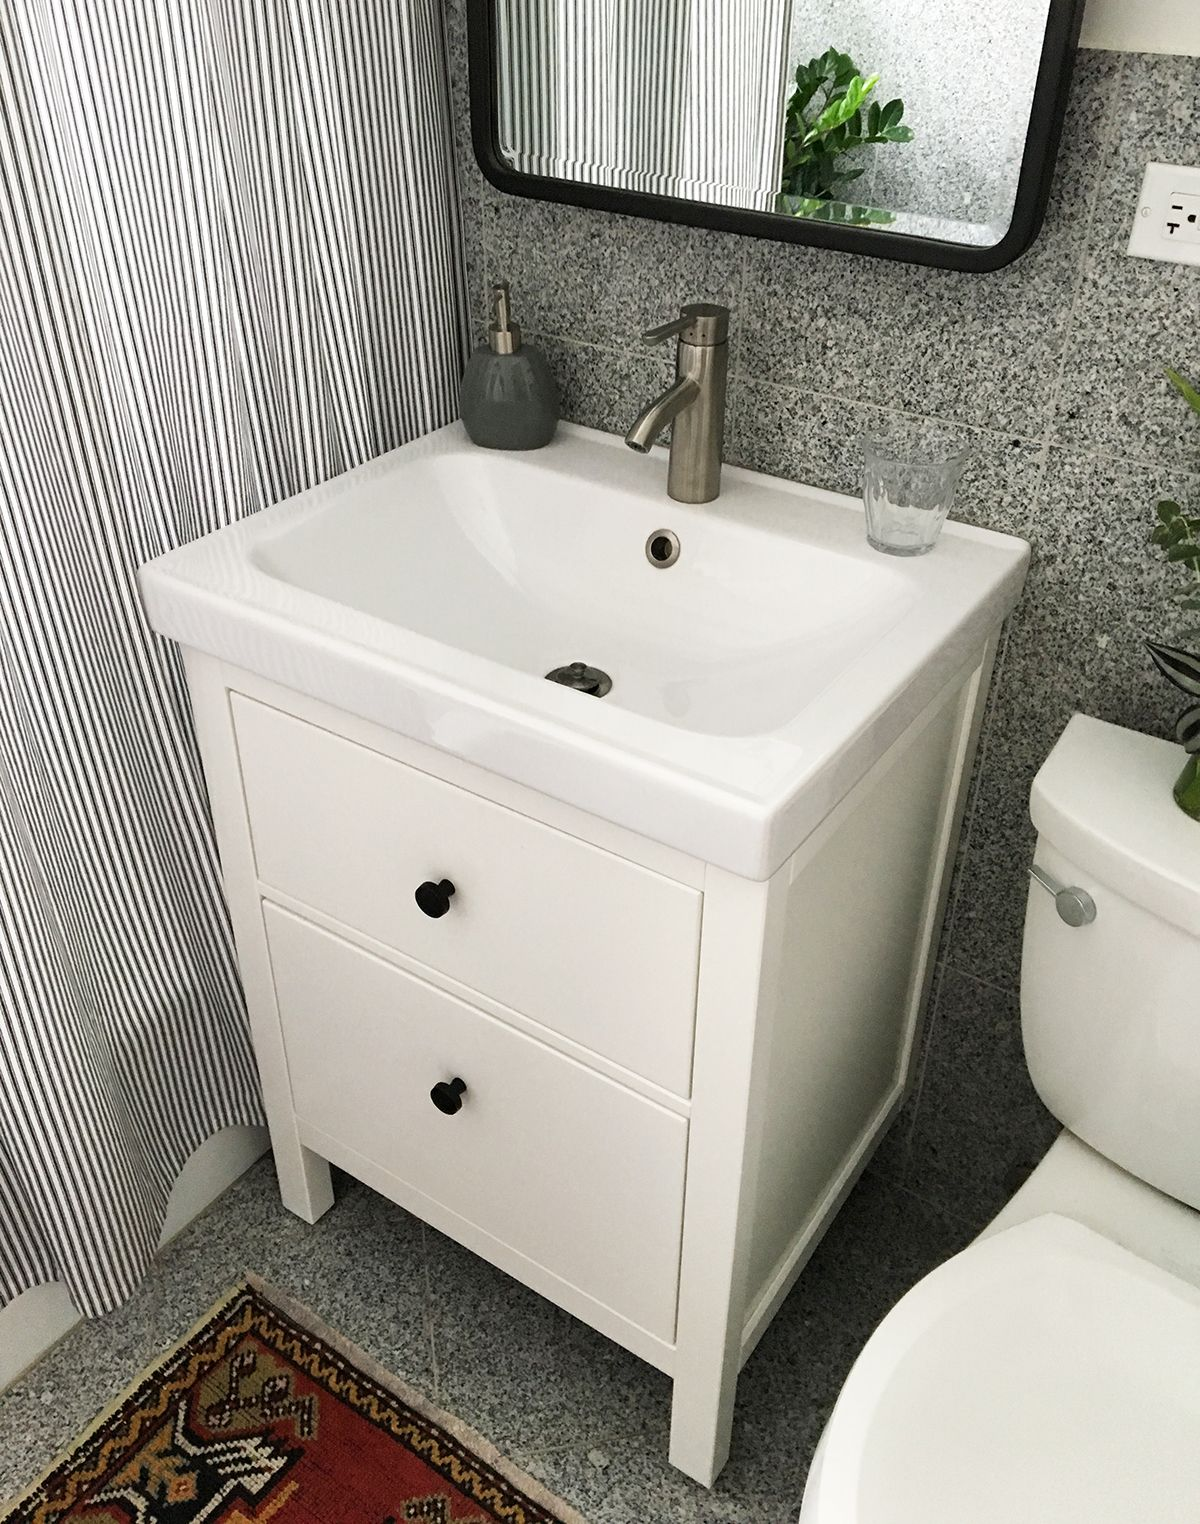 Installing a hemnes odensvik bathroom vanity and sink - How to install a bathroom vanity ...